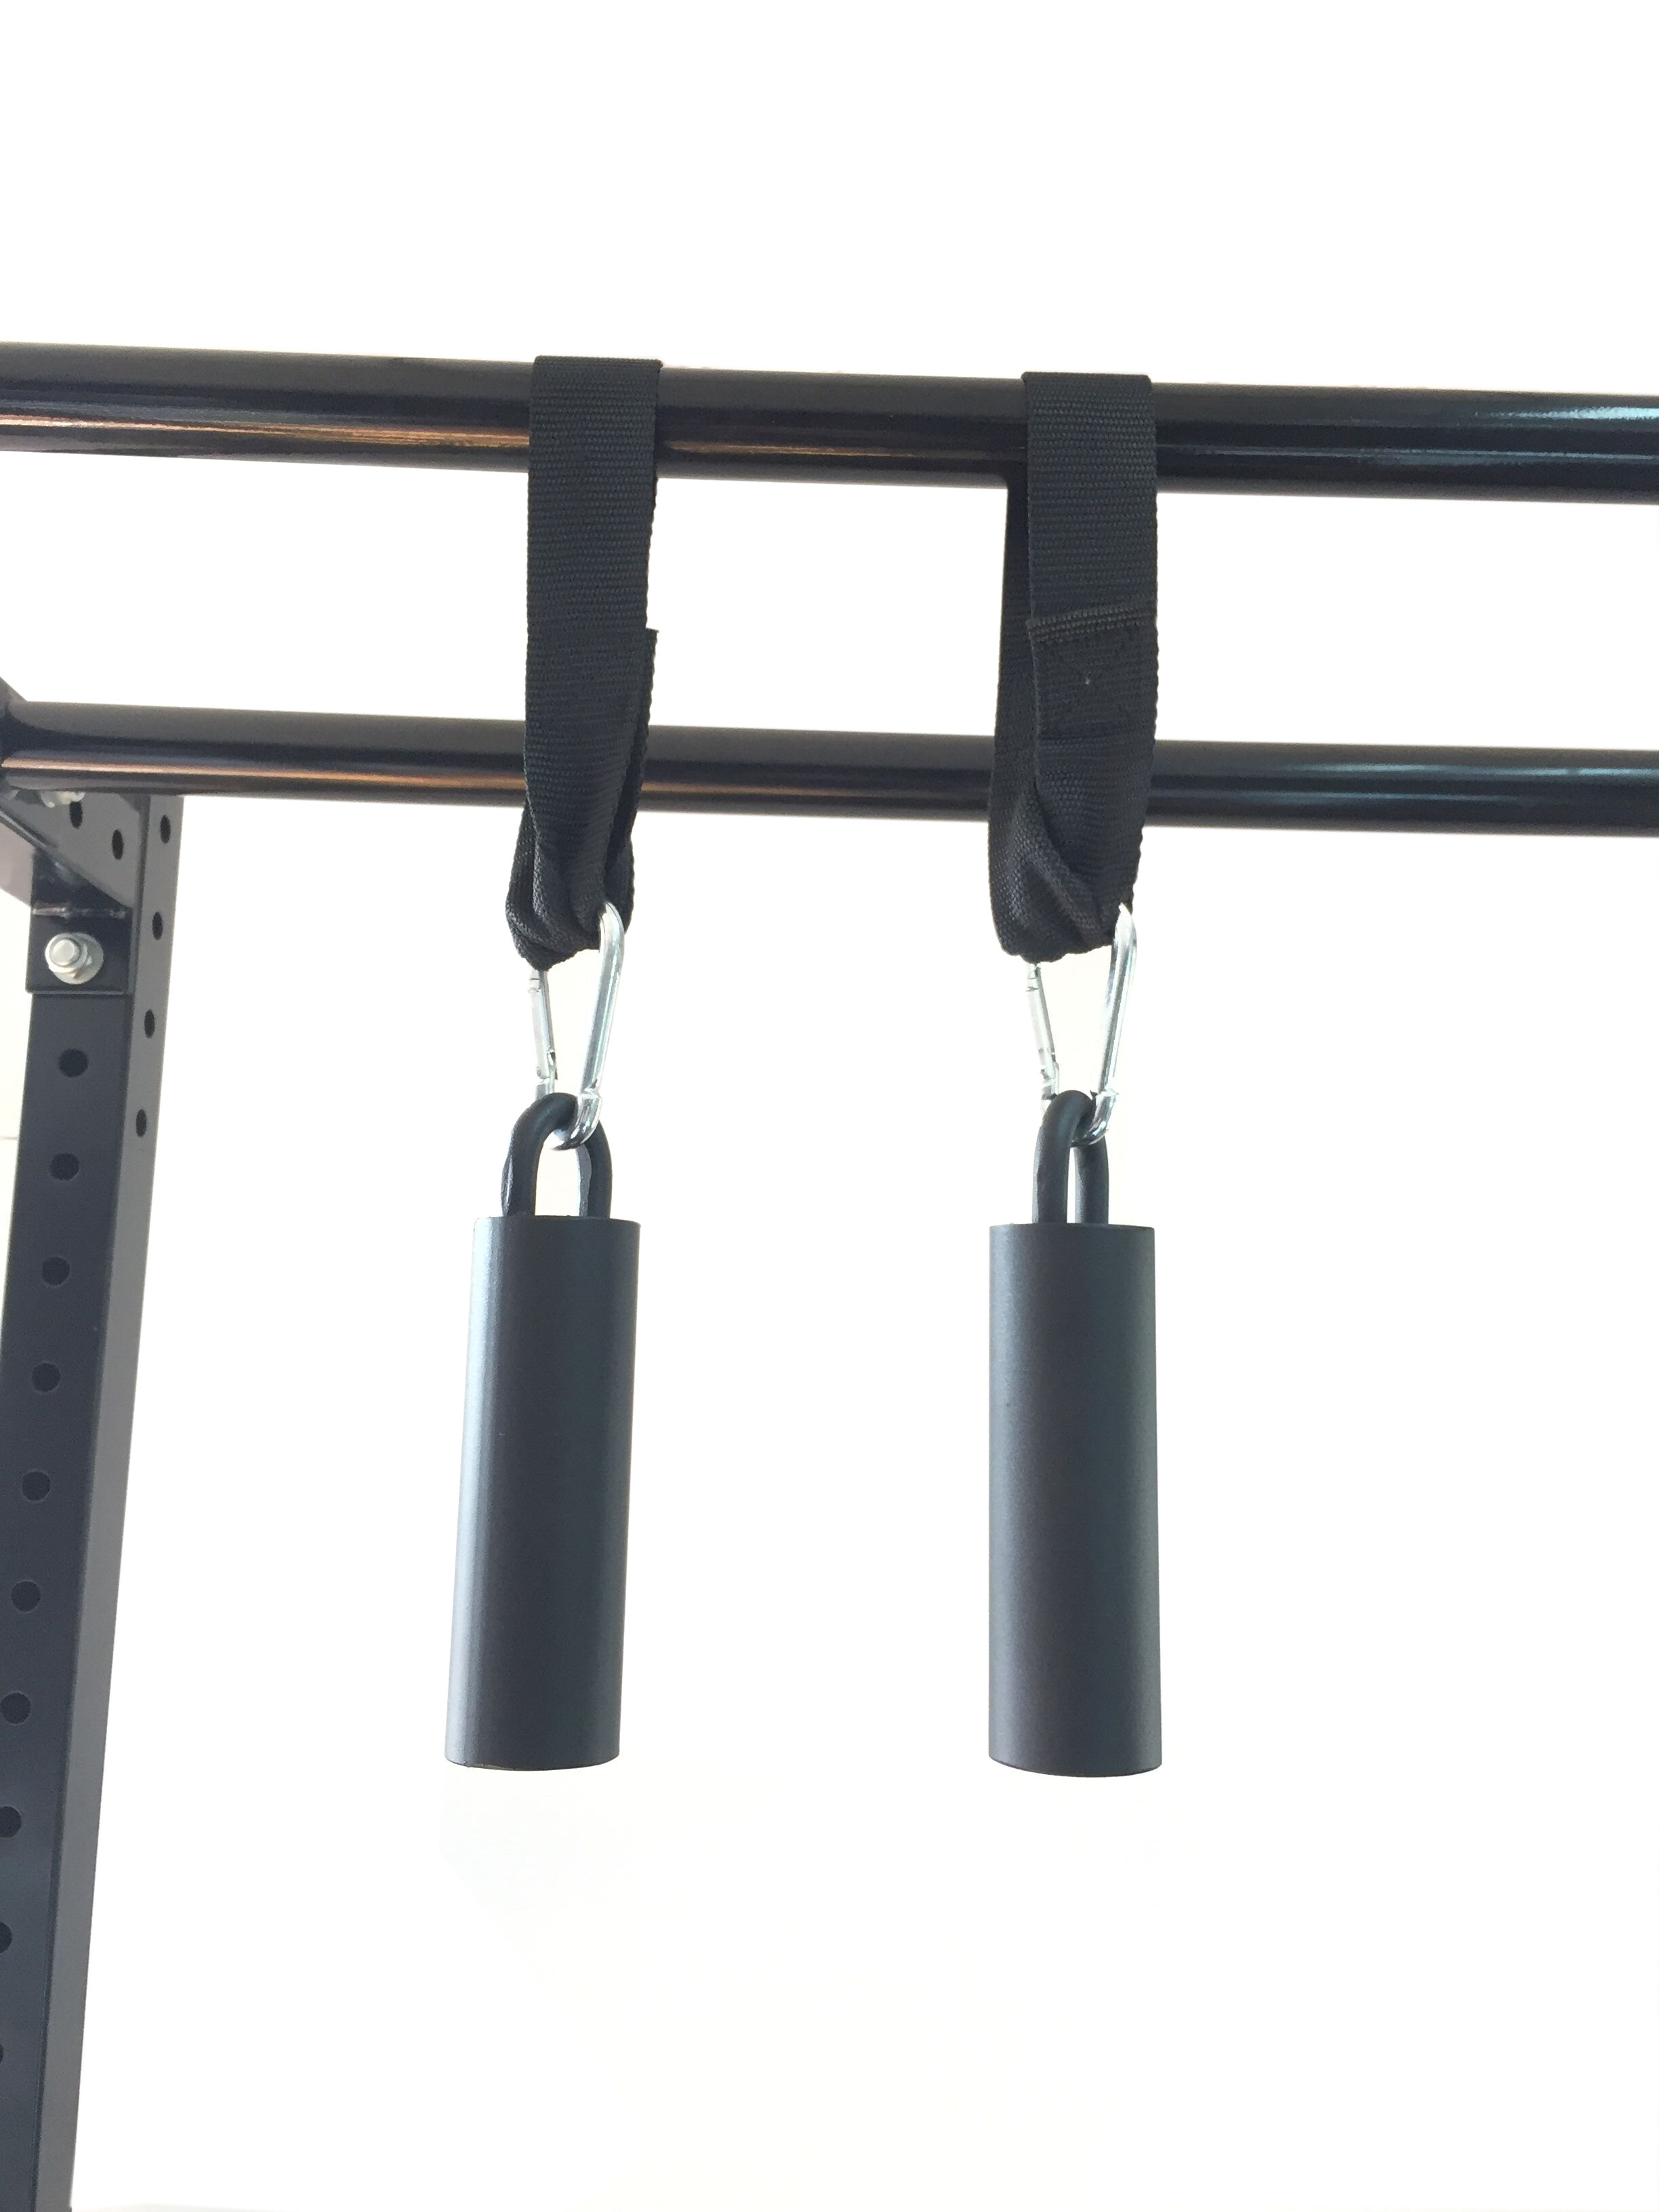 FITUALIZED Cannonball Grips (Pair) - Versatile Hand & Grip Strength Trainer - Hand Exerciser & Grip Strengthener - Ideal For Pull-Ups, Barbells, Dumbbells, Kettlebells & Weights